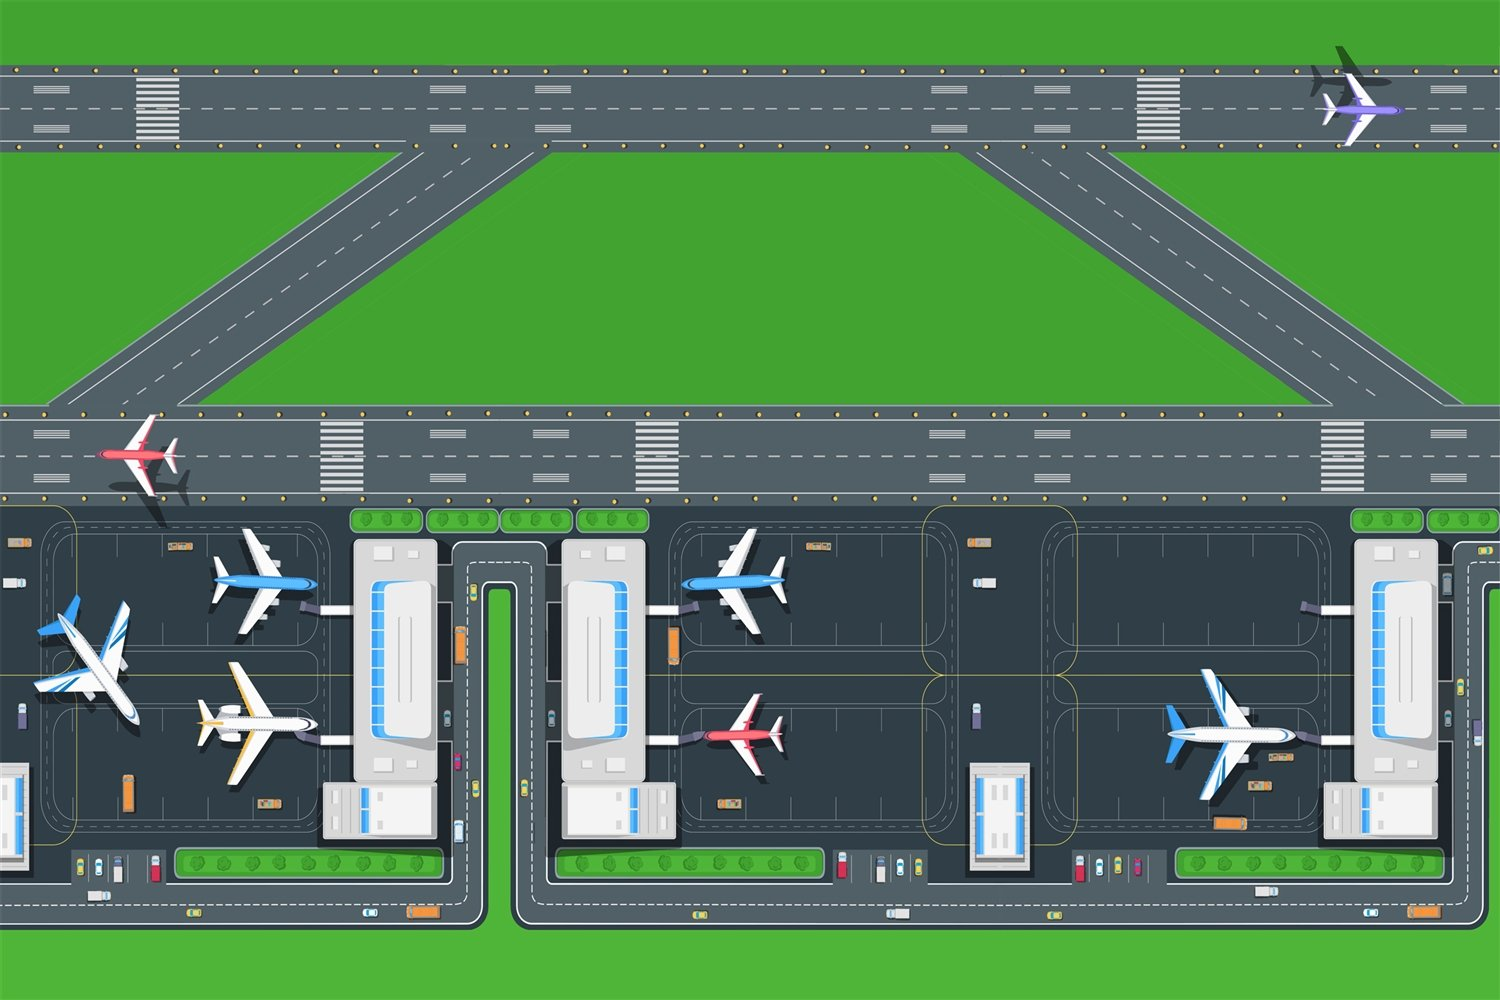 Be-Active Giant New Airport & Runway Playmat - A fun addition to the bedroom, nursery or classroom (150 x 100cm) SPO